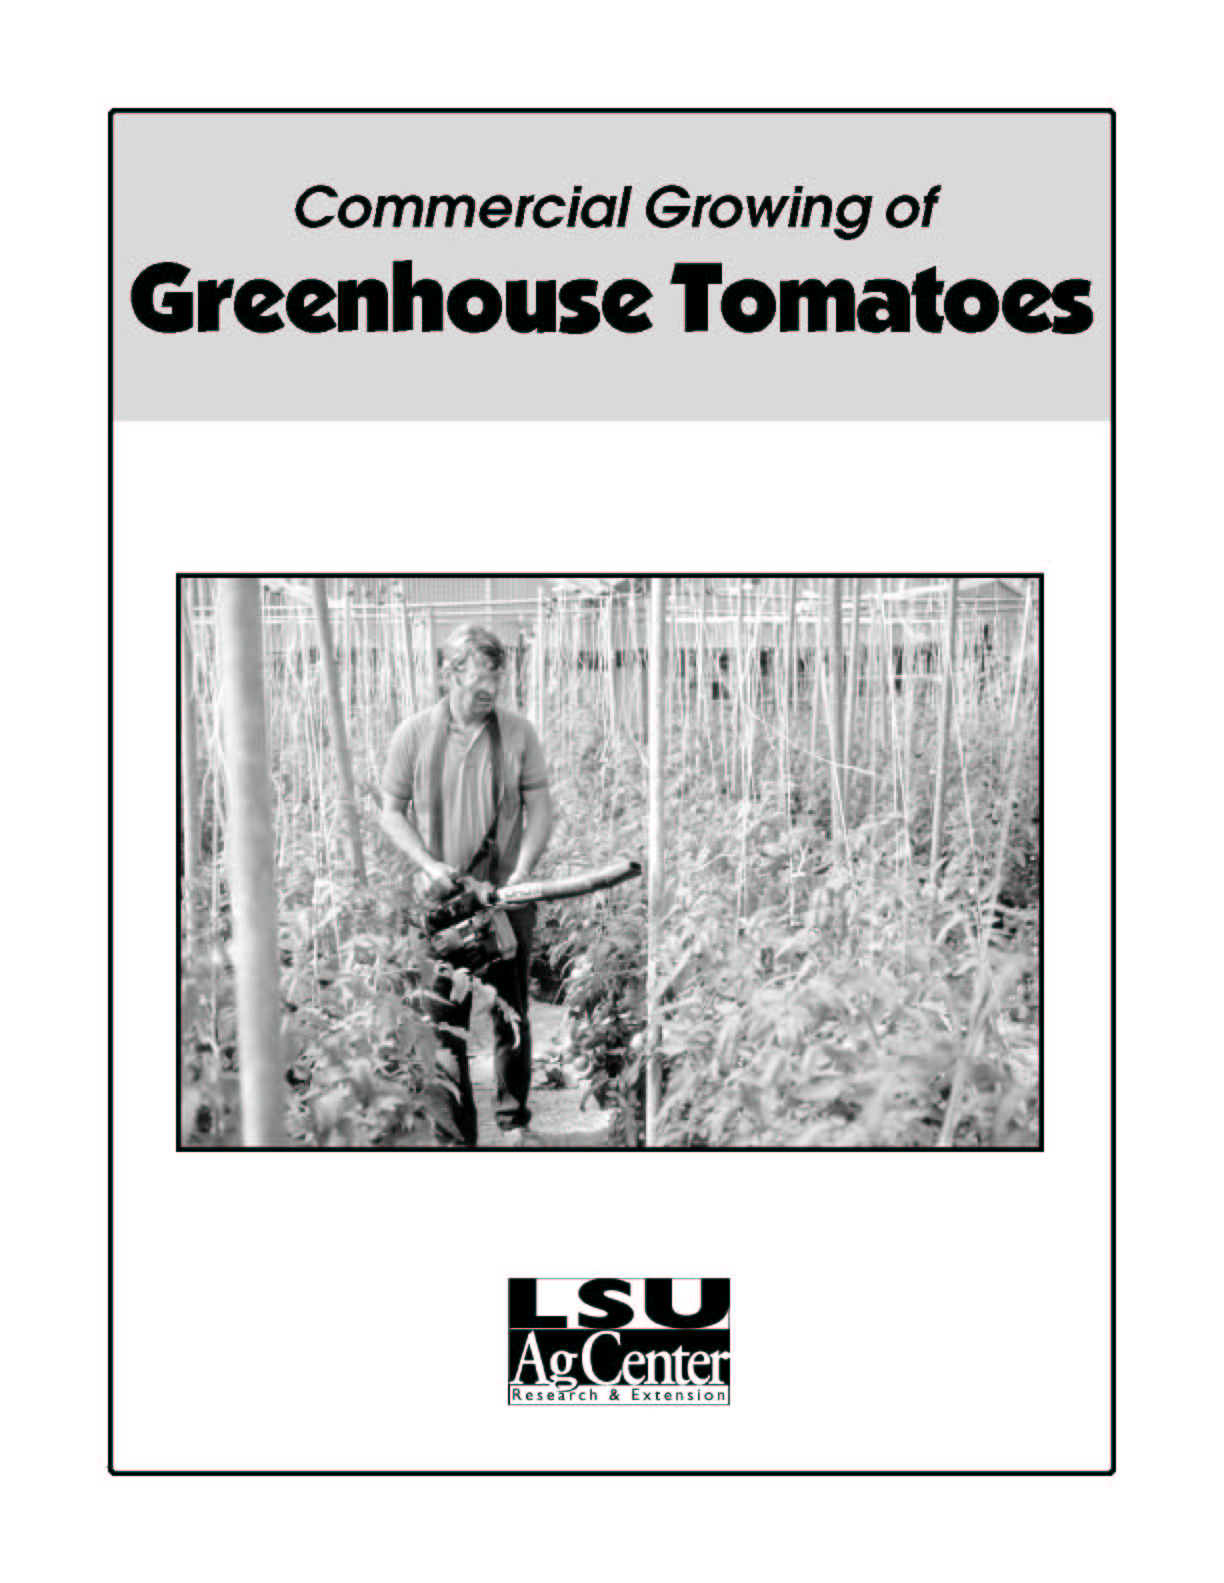 Commercial Growing of Greenhouse Tomatoes